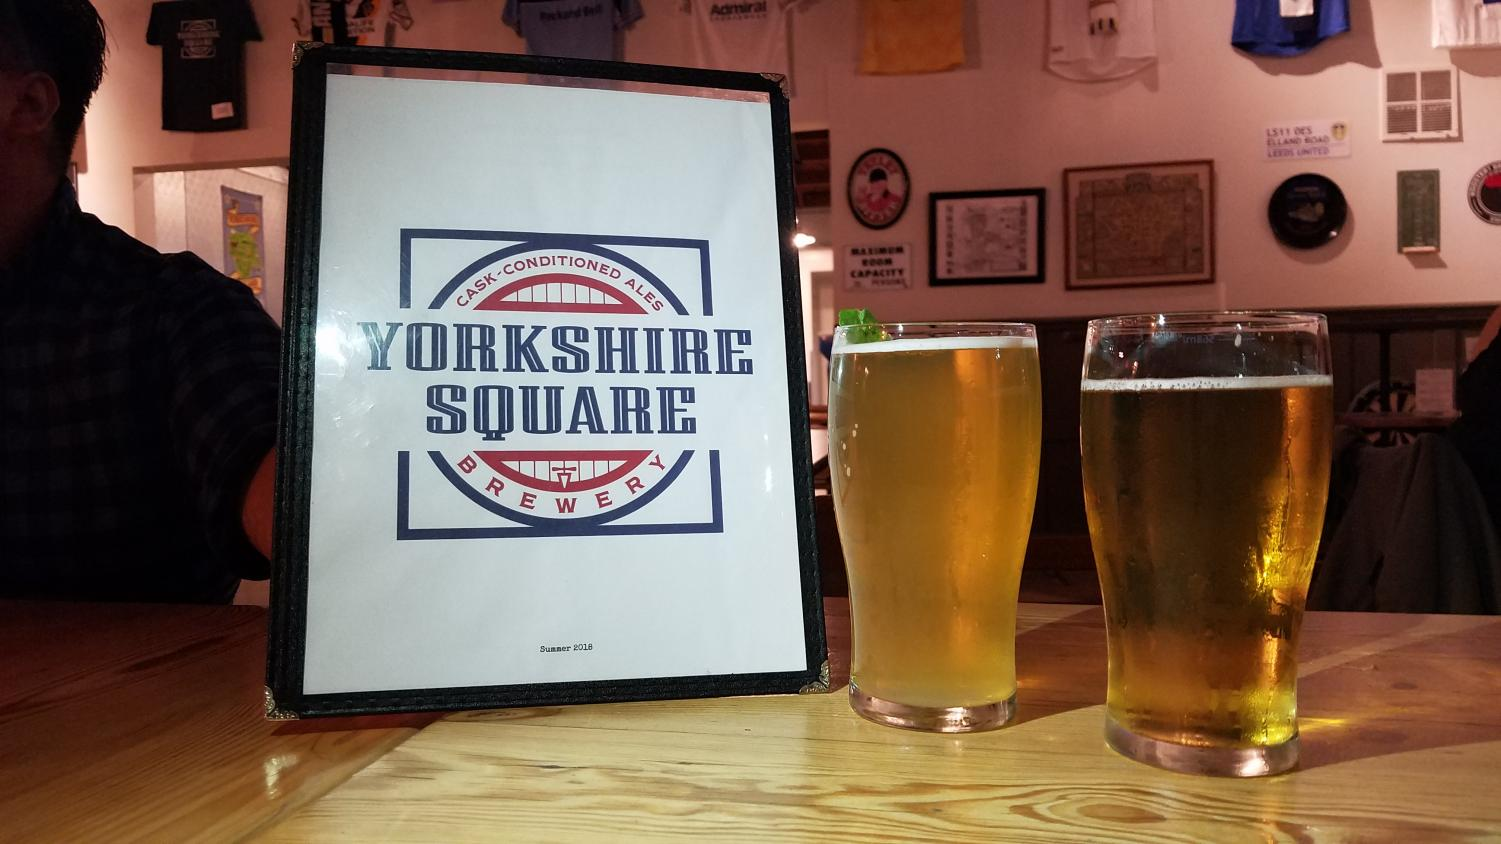 Yorkshire+Square+Brewery+Photo+credit%3A+Amanda+Alvarez